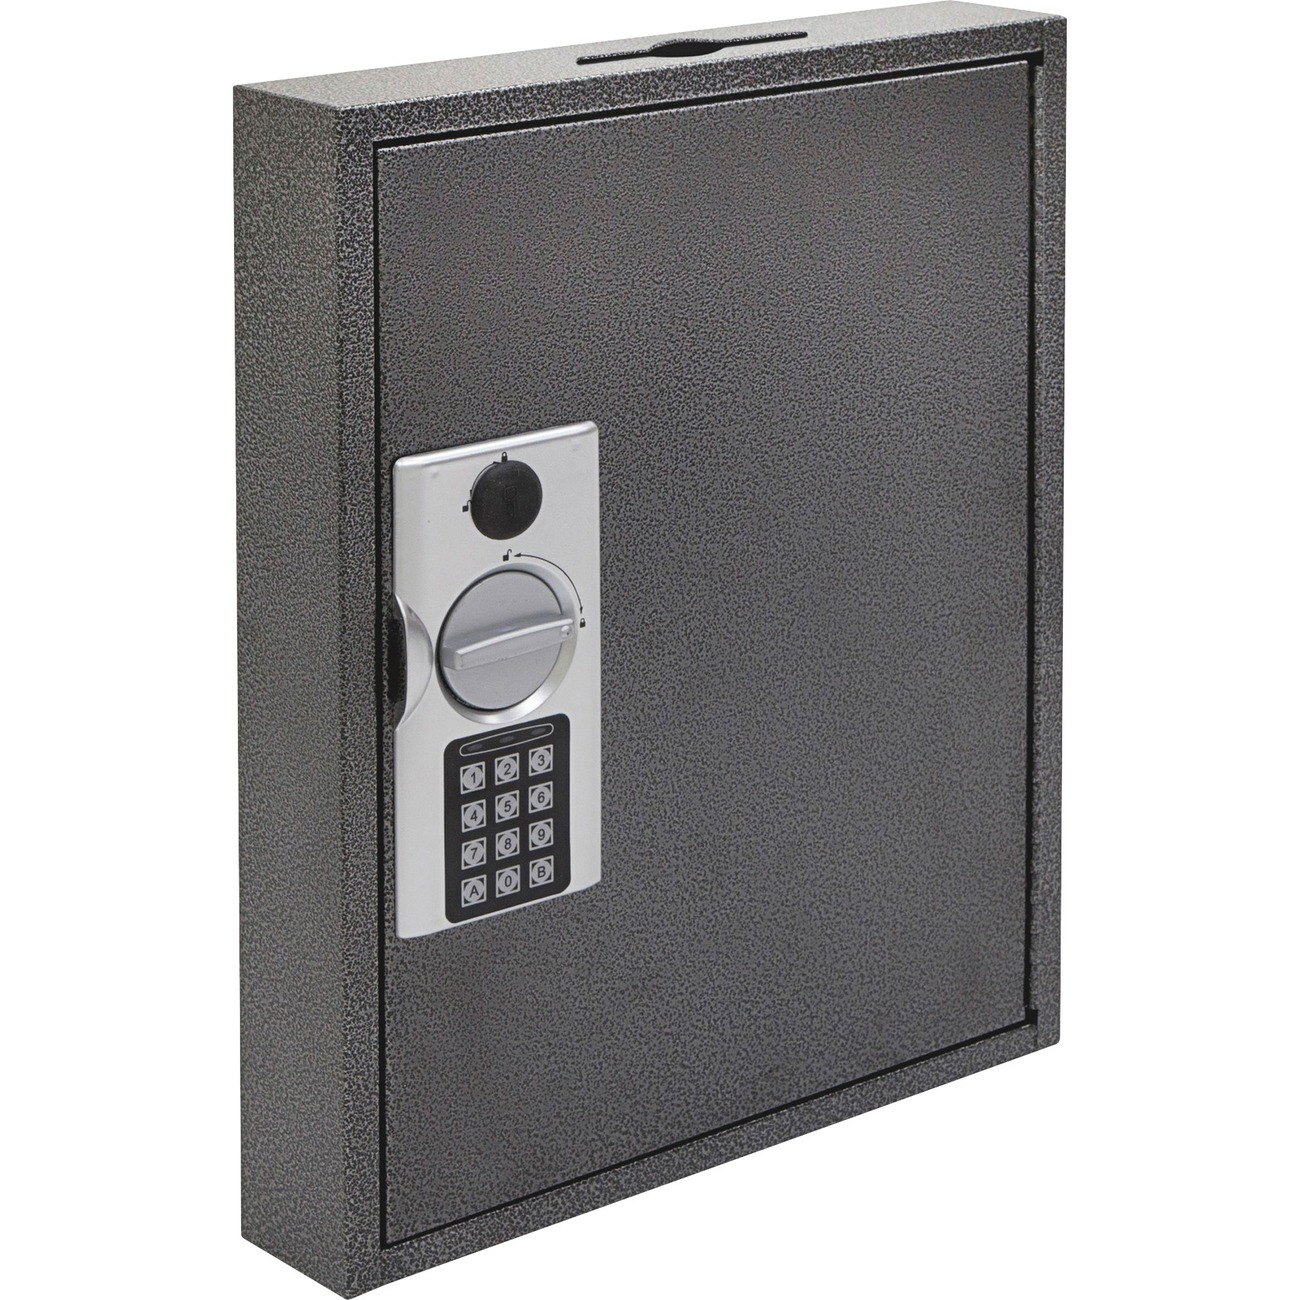 Key Cabinet With Electronic Locking Device Adds Higher Security To Protect Important Keys 60 Capacity Is Made Of Welded Heavy Gauge Steel